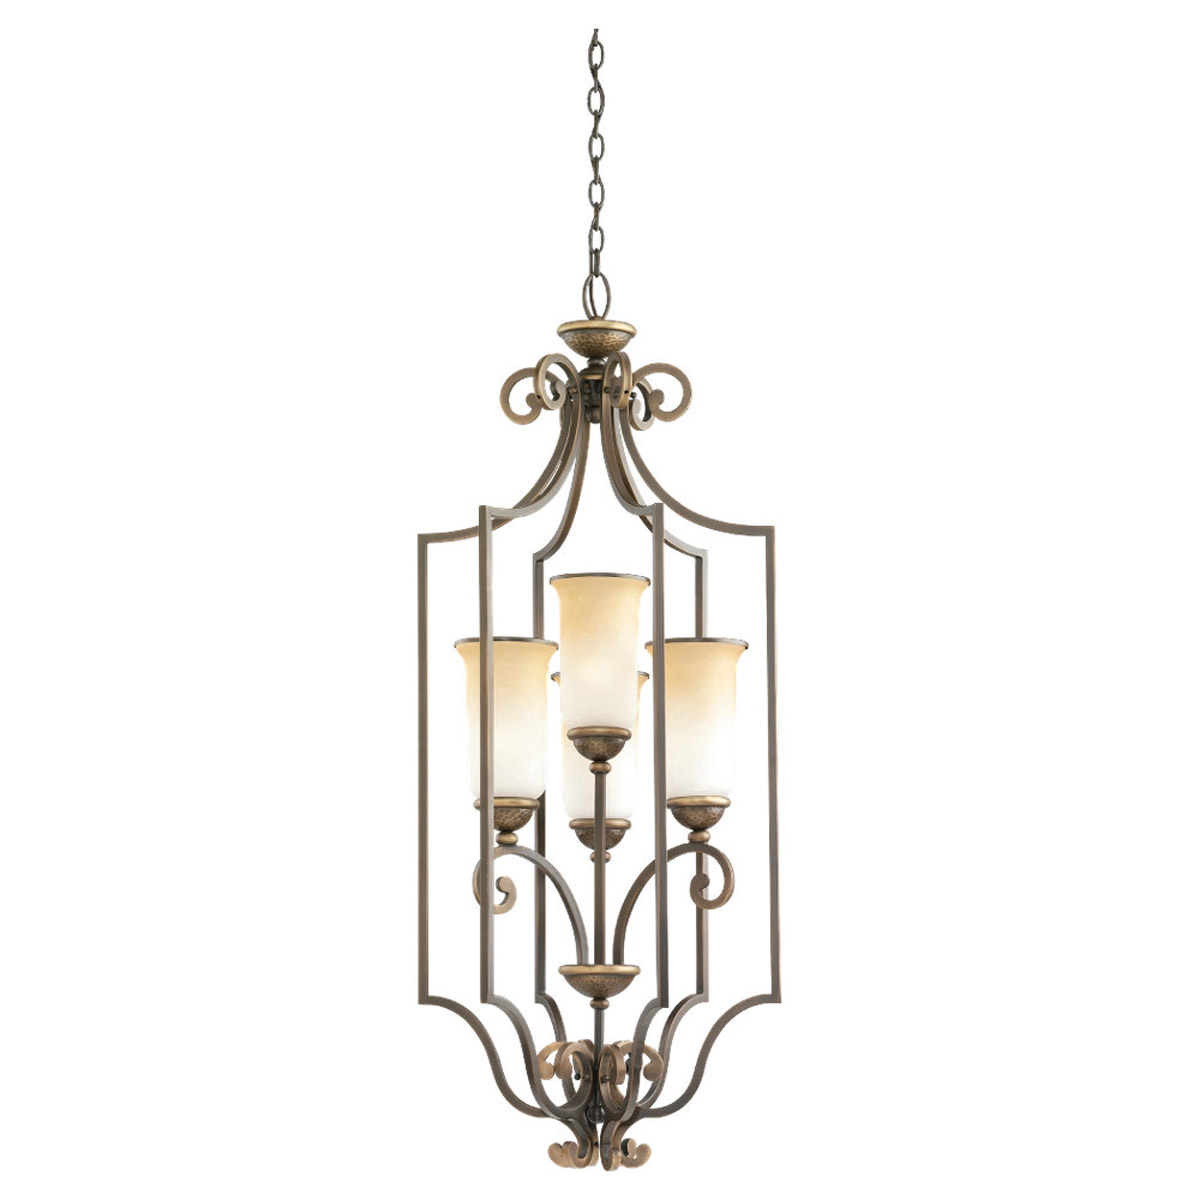 Sea Gull Lighting Brandywine 4 Light Fluorescent Hall / Foyer Pendant in Antique Bronze 59431BLE-71